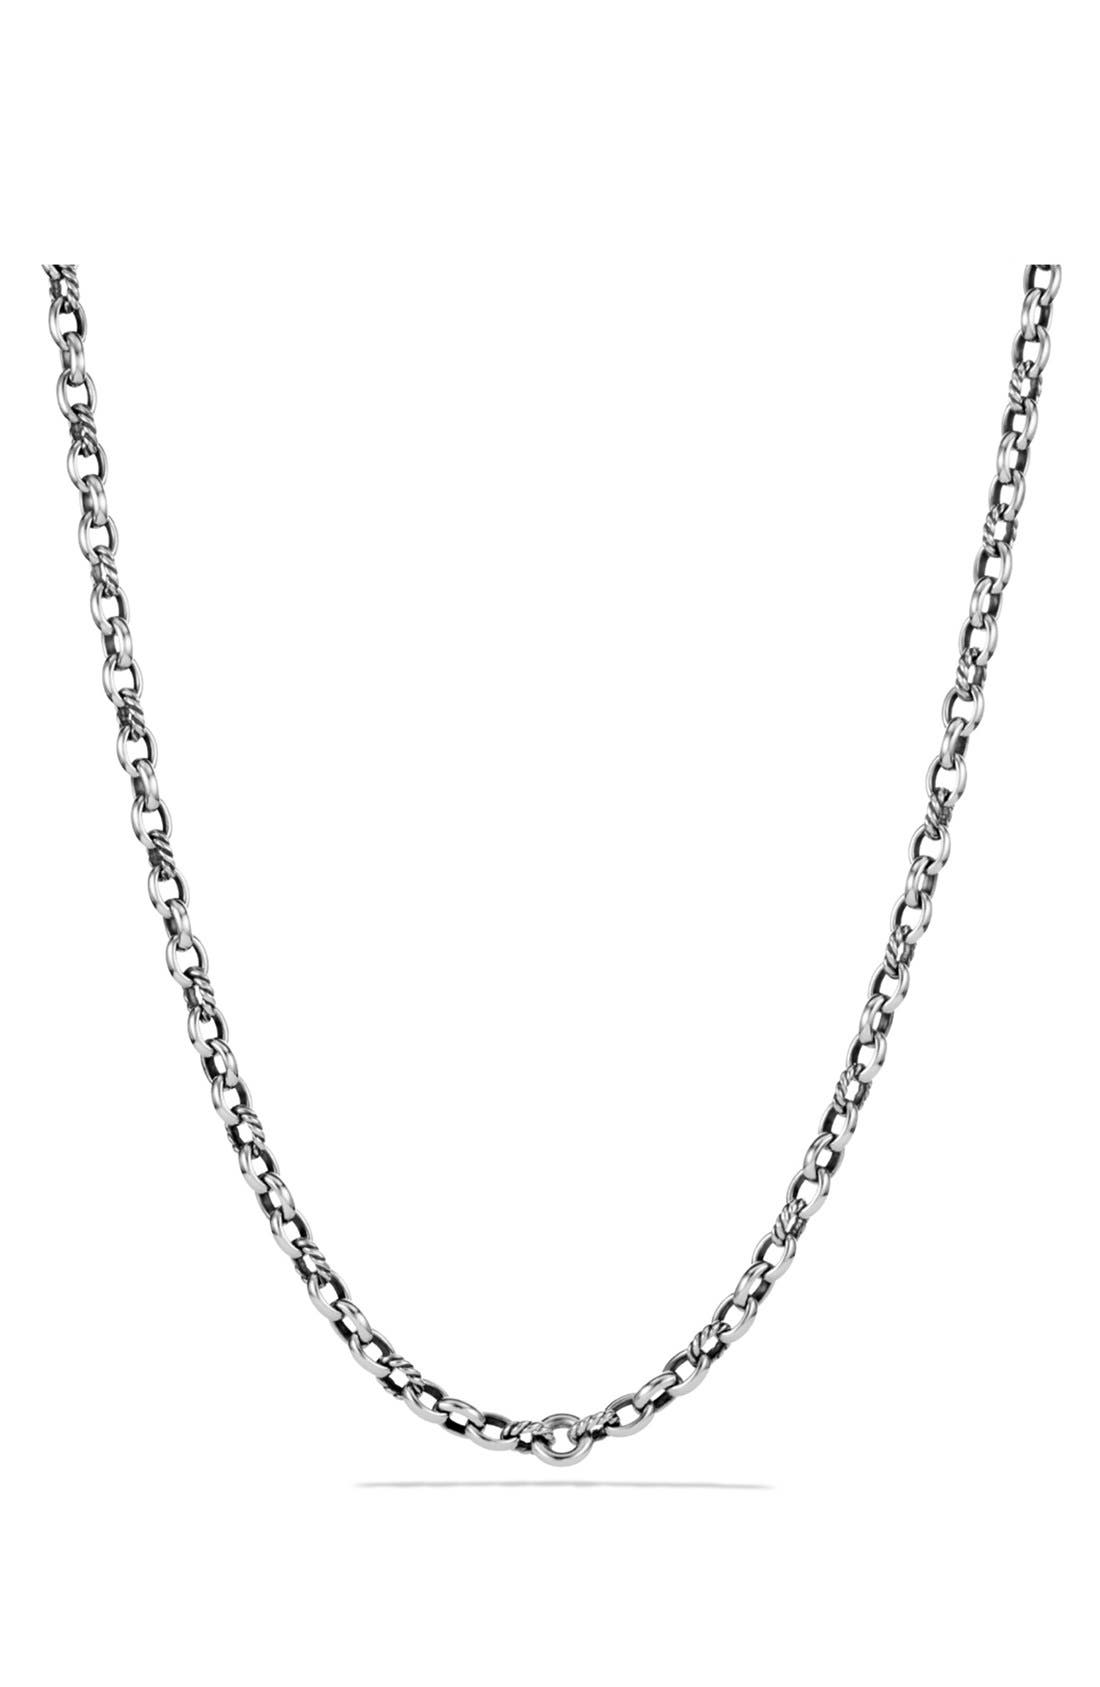 'Chain' Cushion Chain Necklace,                         Main,                         color, SILVER